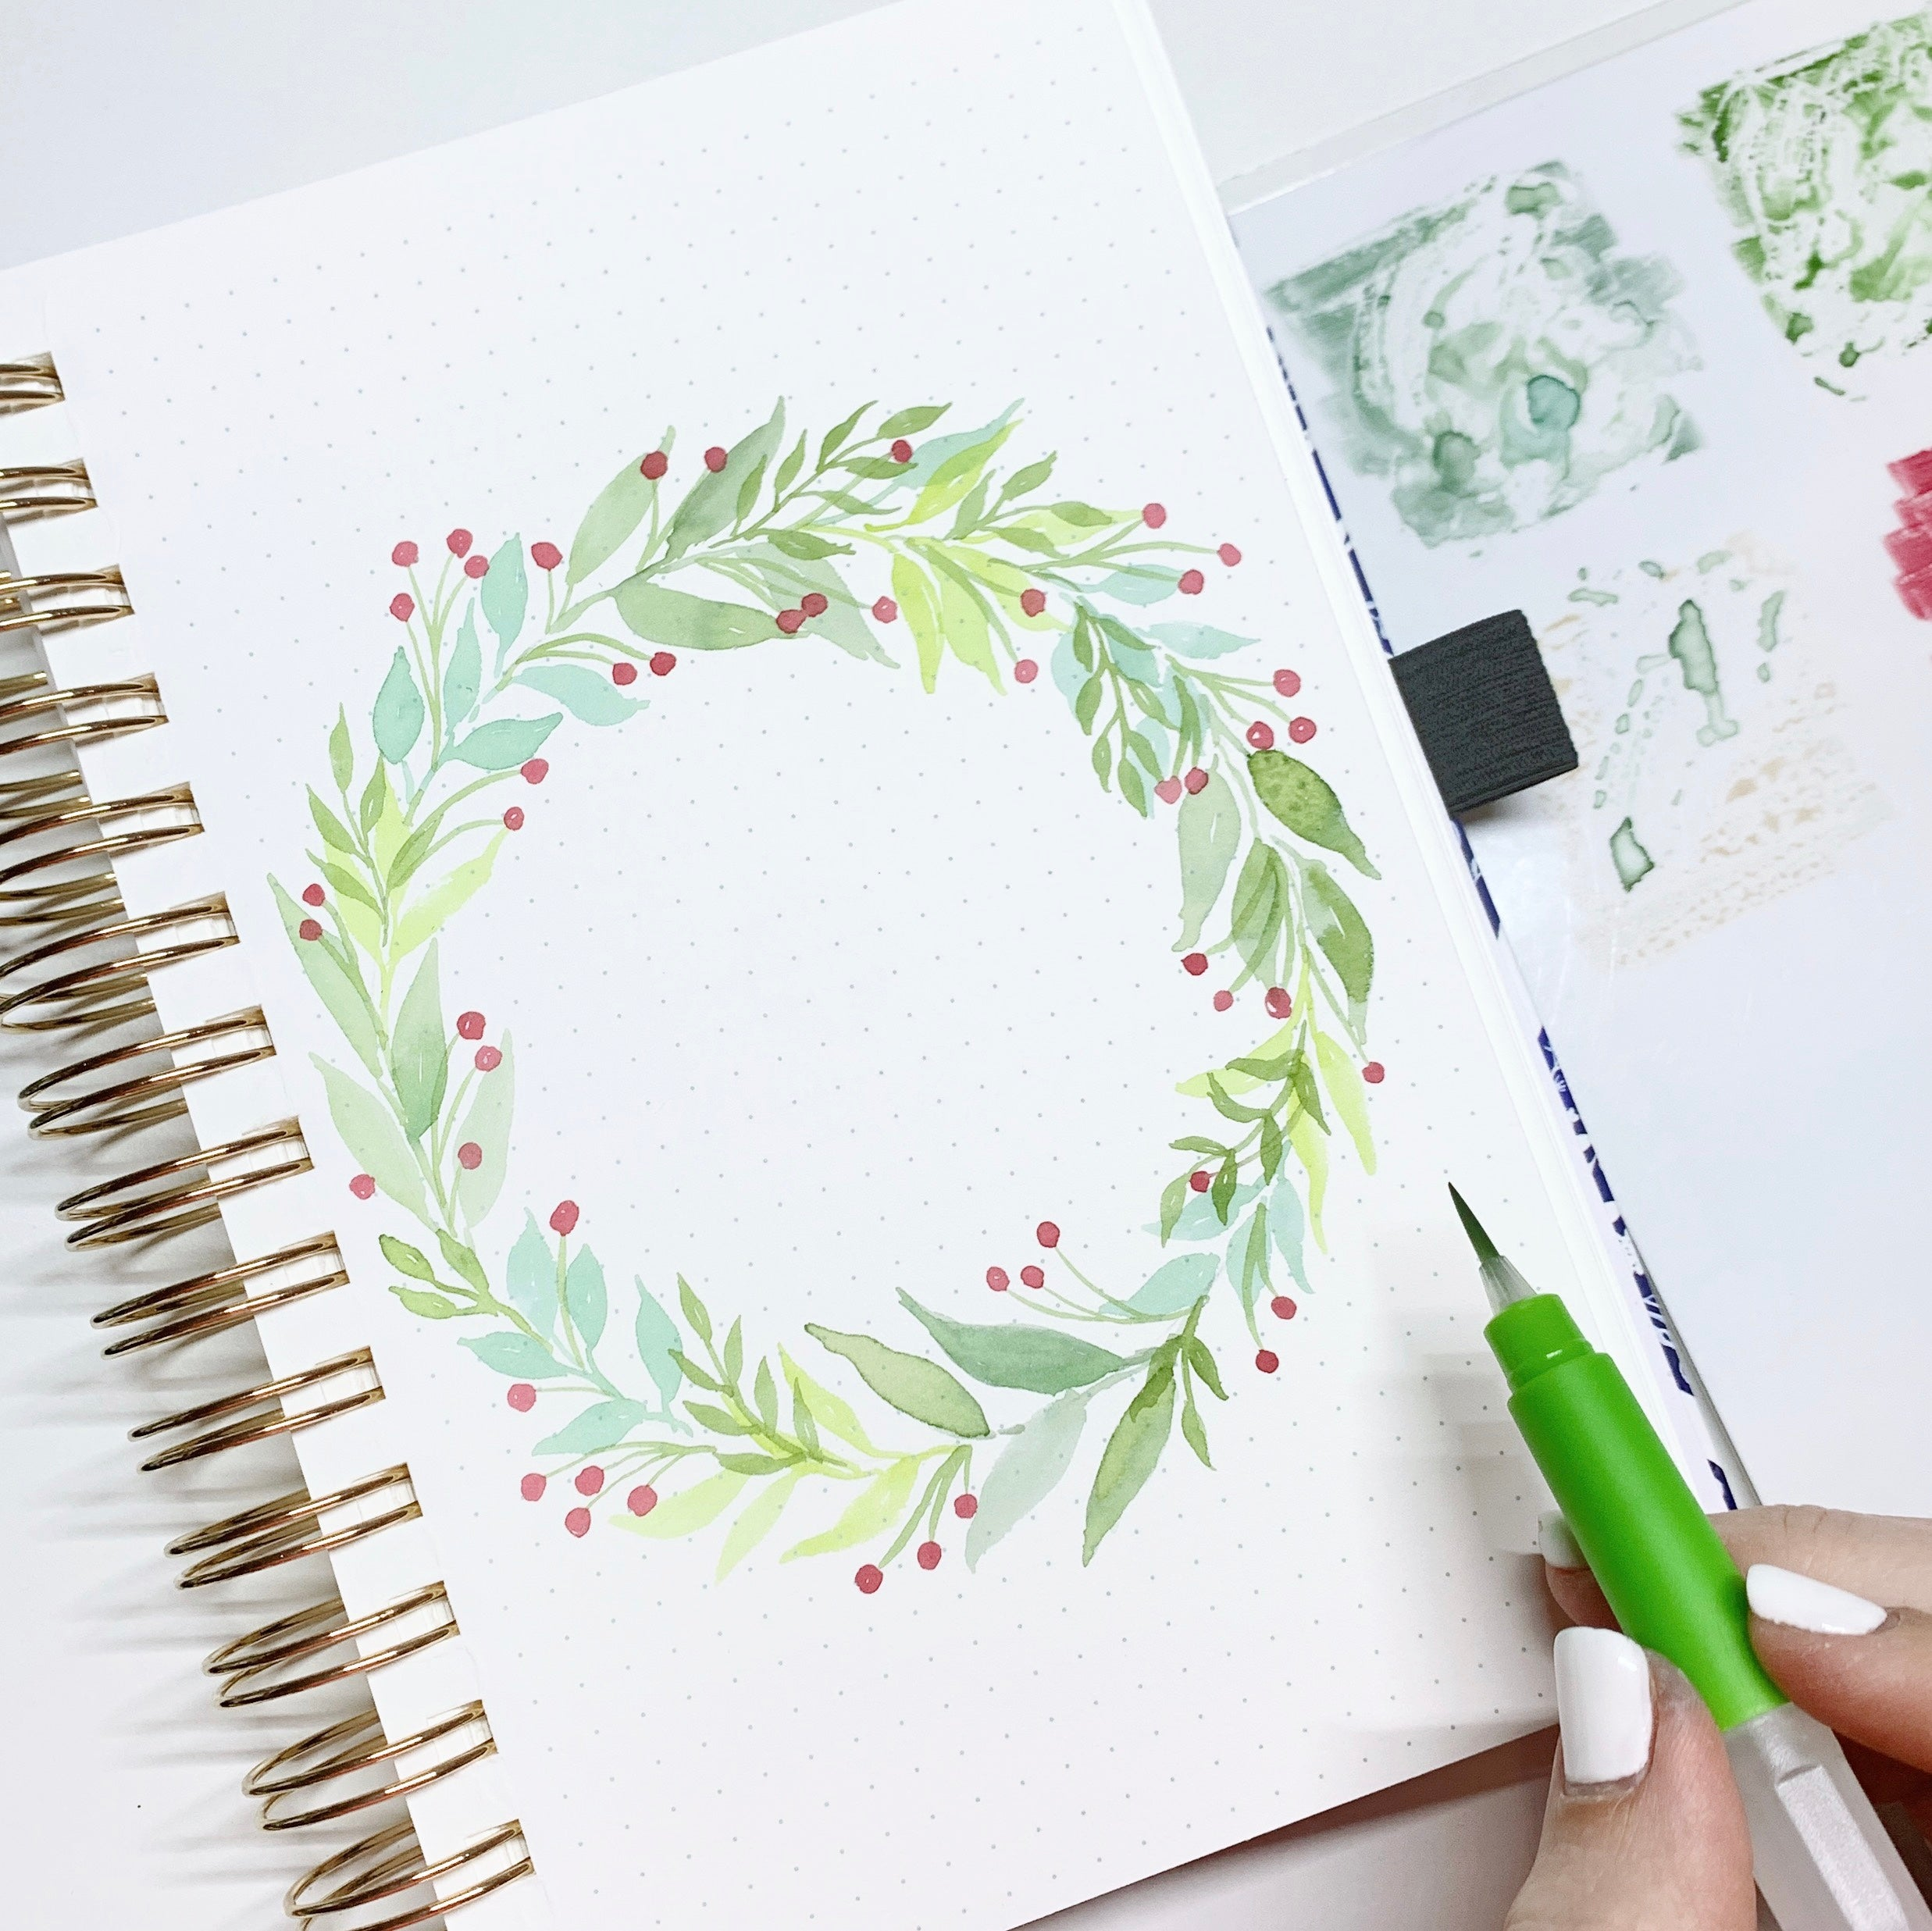 Learn how to create a holiday watercolor wreath with Adrienne from @studio80design!